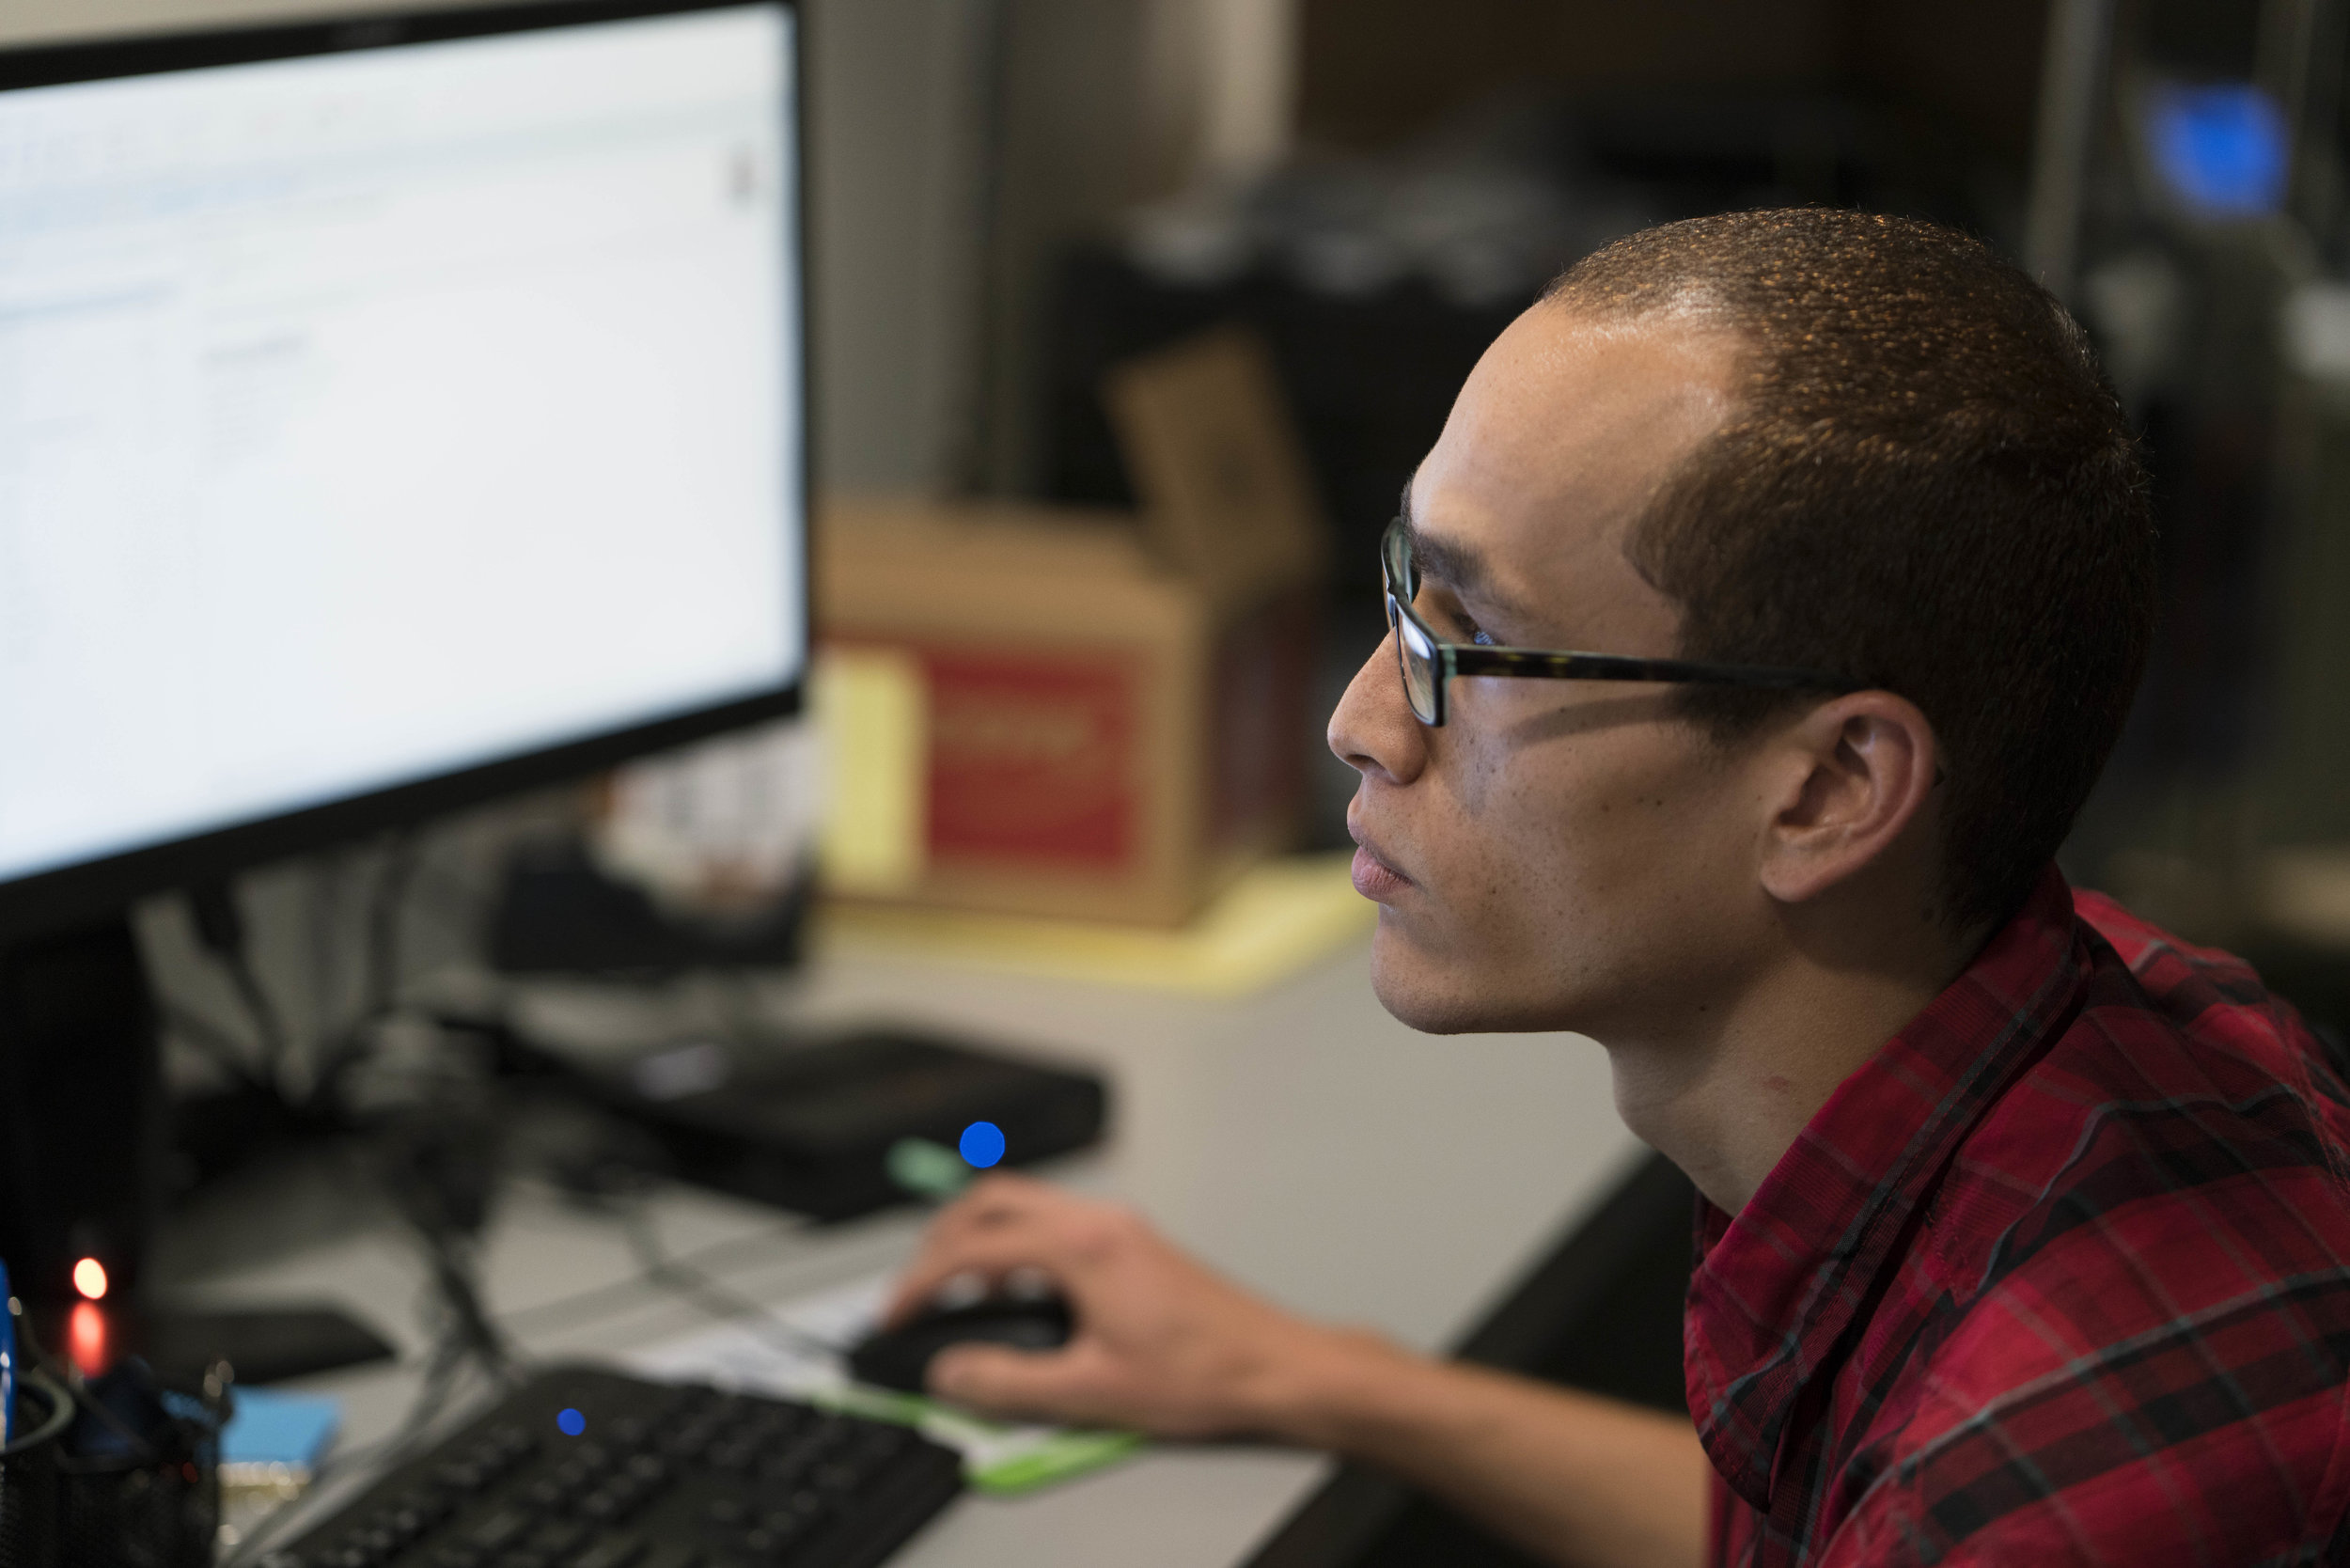 Ivan '16 hired by tech support at Greenspoon Marder.